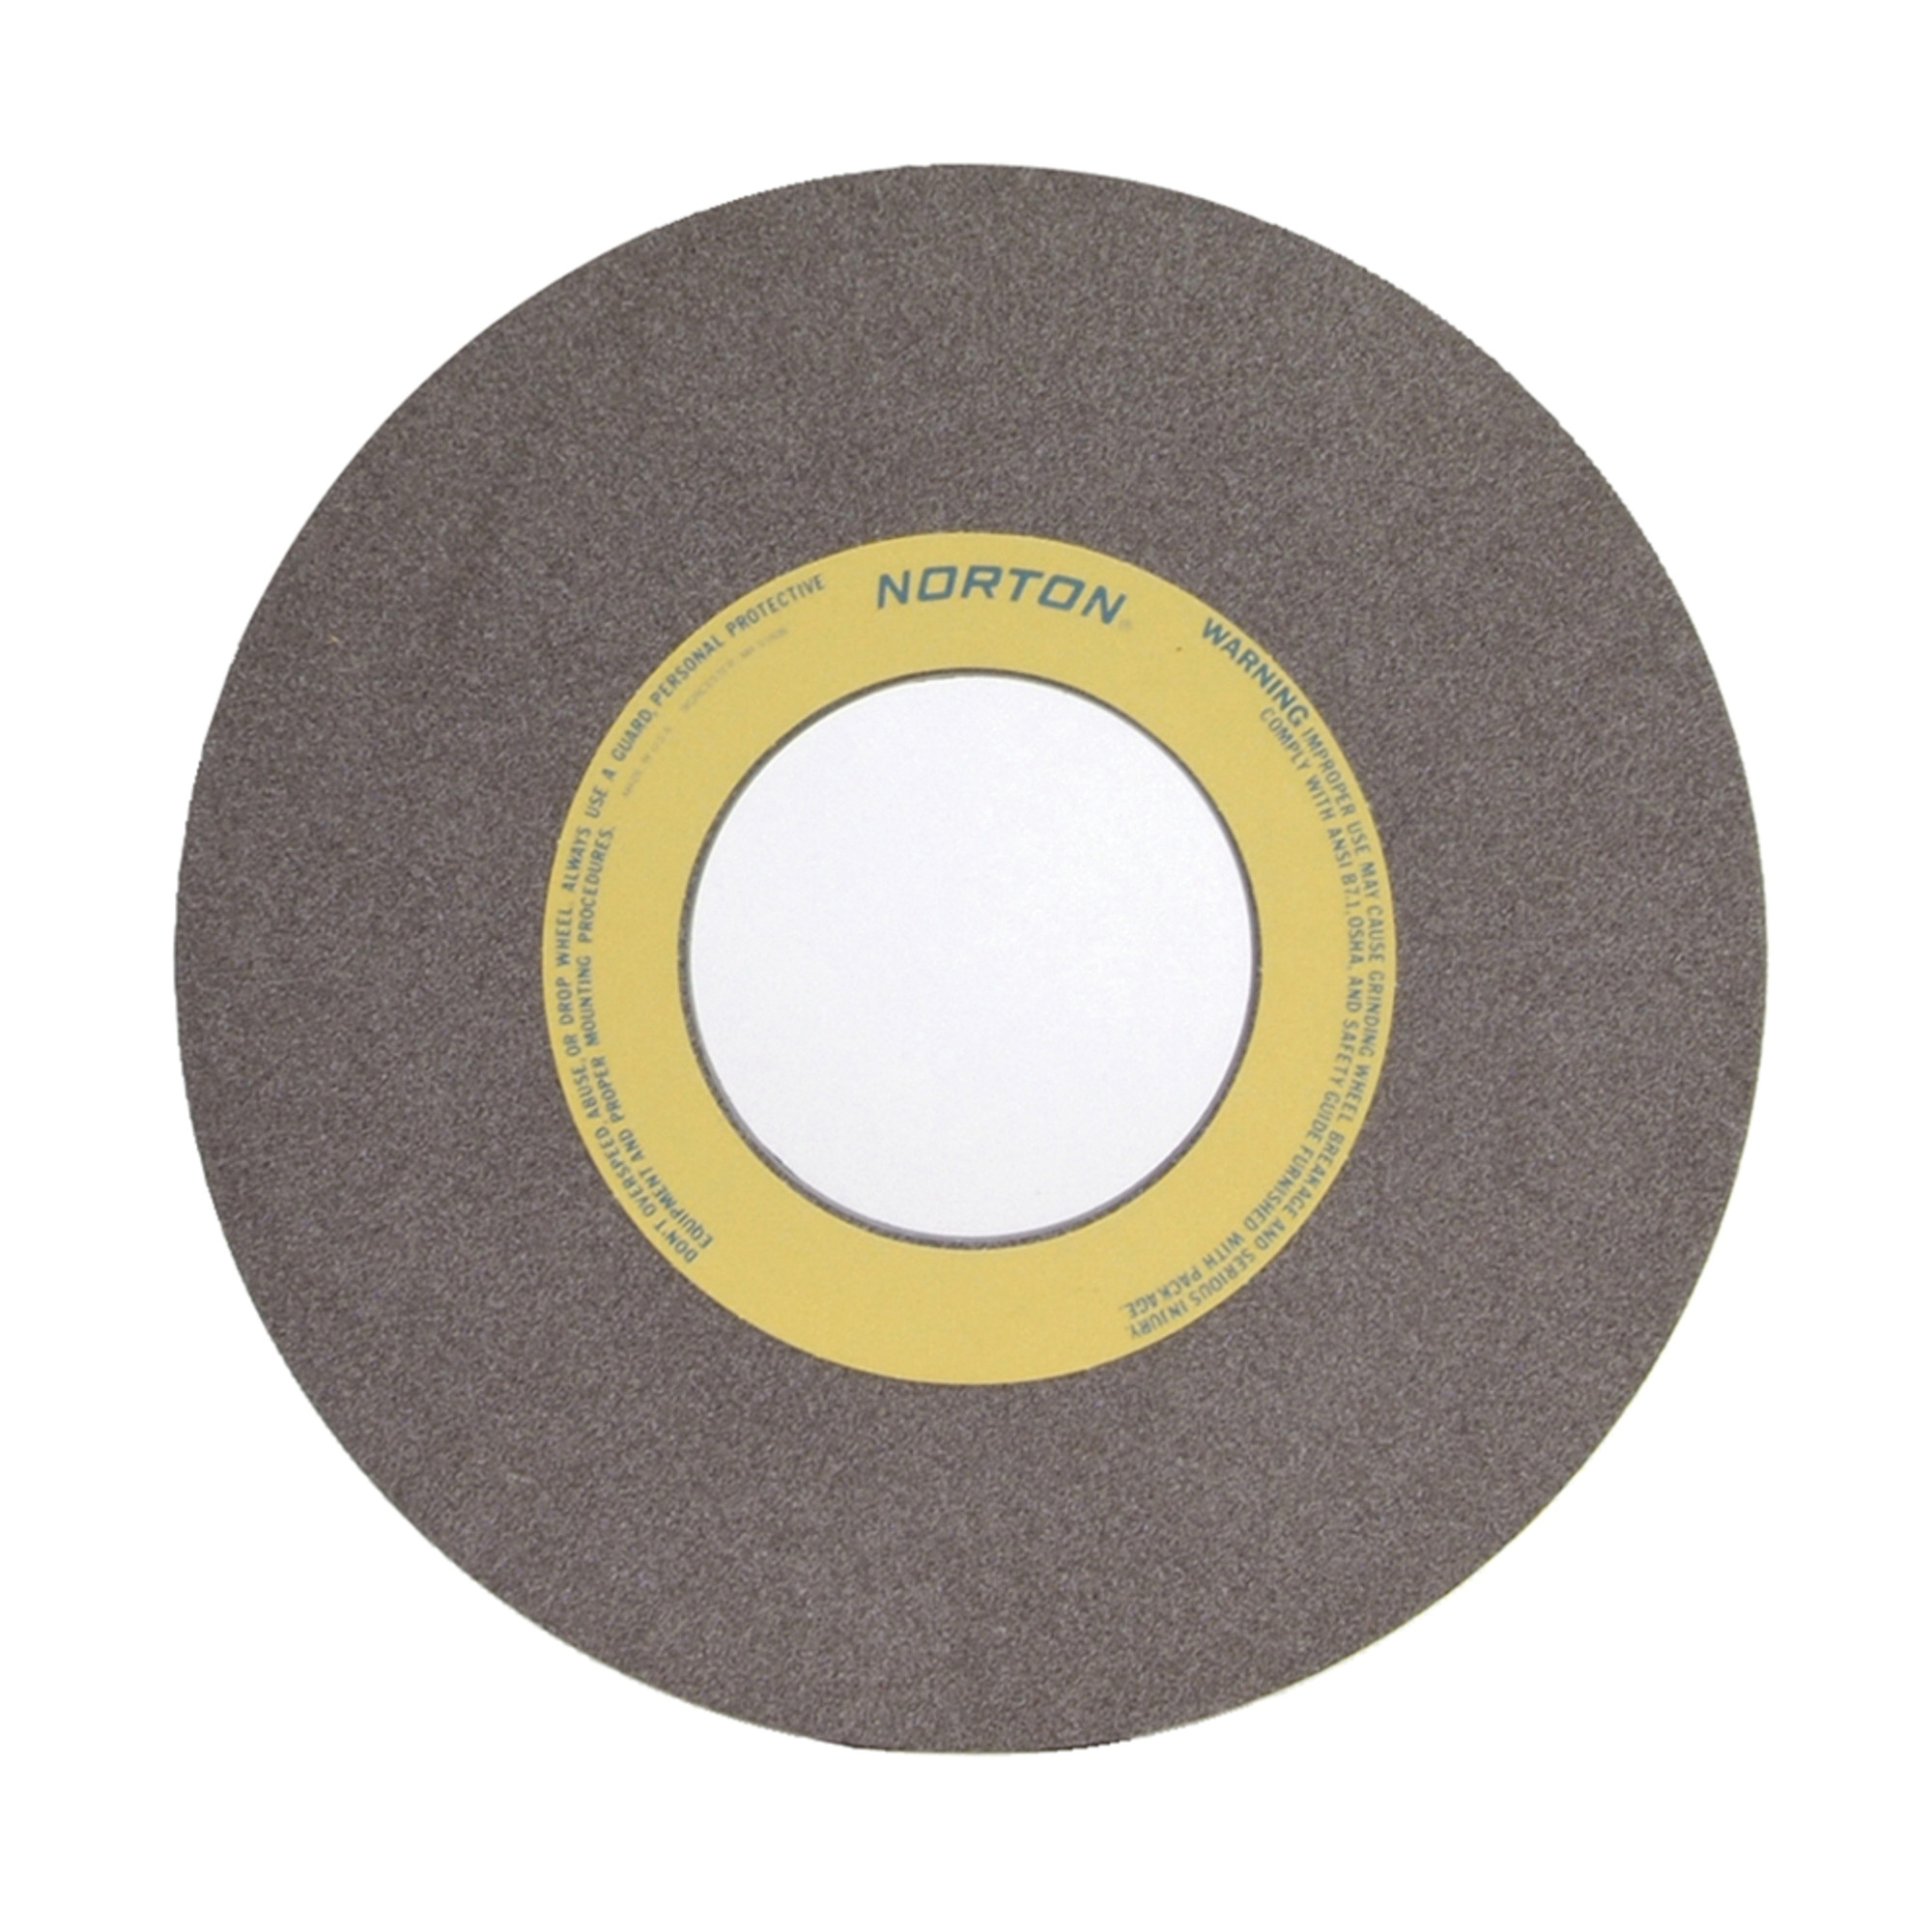 Norton® 66253364065 57A Straight Toolroom Wheel, 14 in Dia x 1 in THK, 5 in Center Hole, 60 Grit, Aluminum Oxide Abrasive